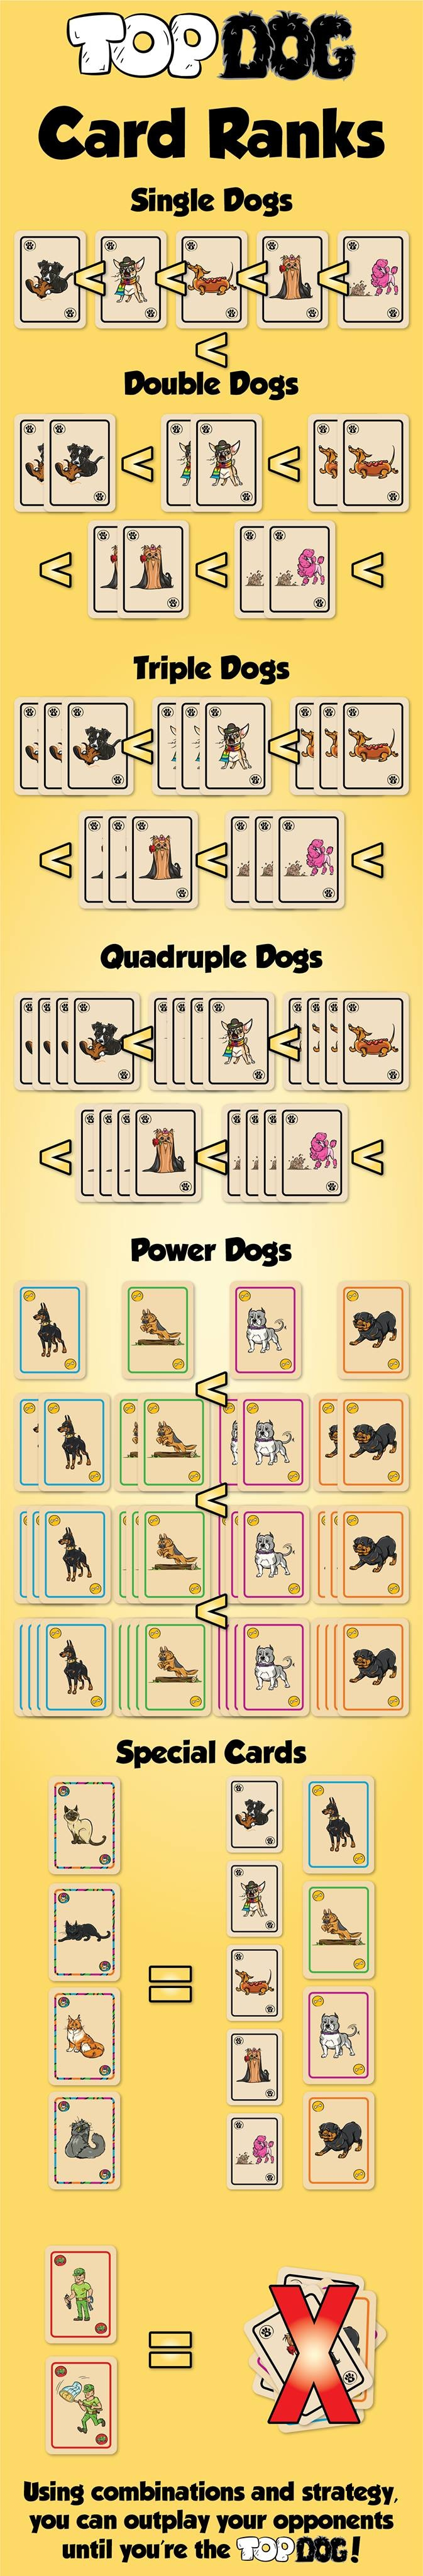 Top Dog Ranking Instructions